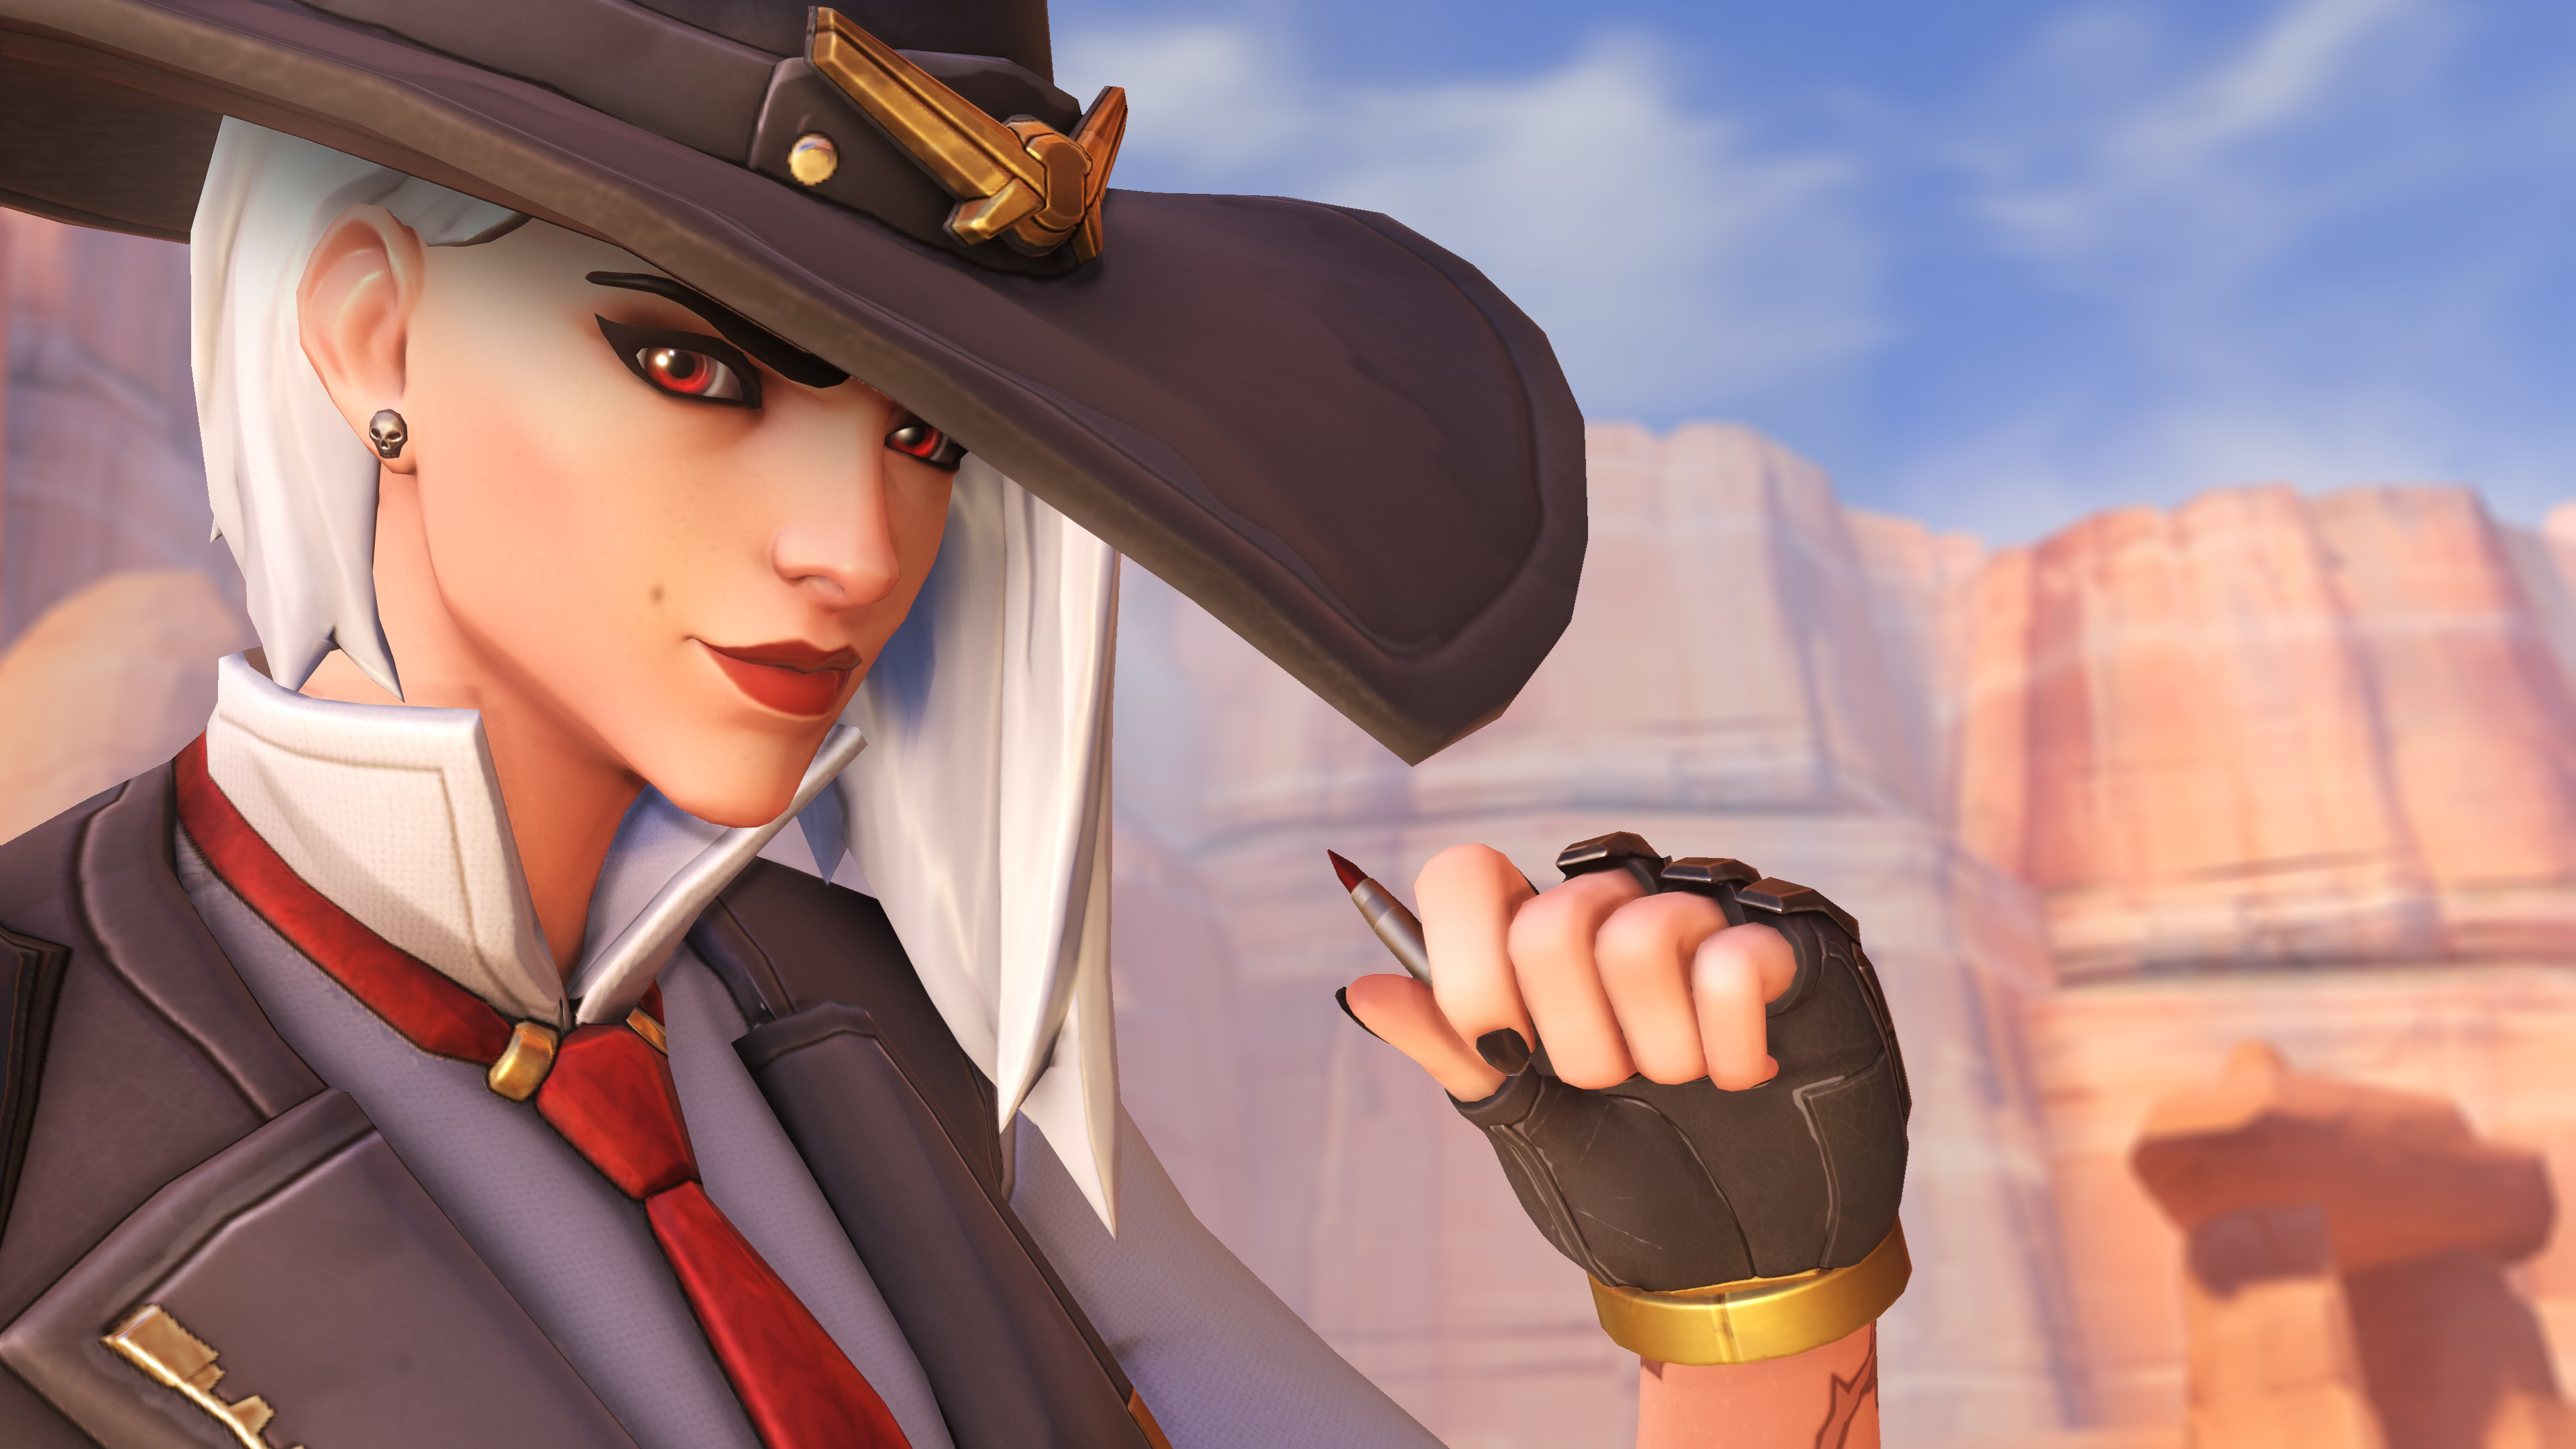 Ashe is Overwatch's newest hero, but who is she?